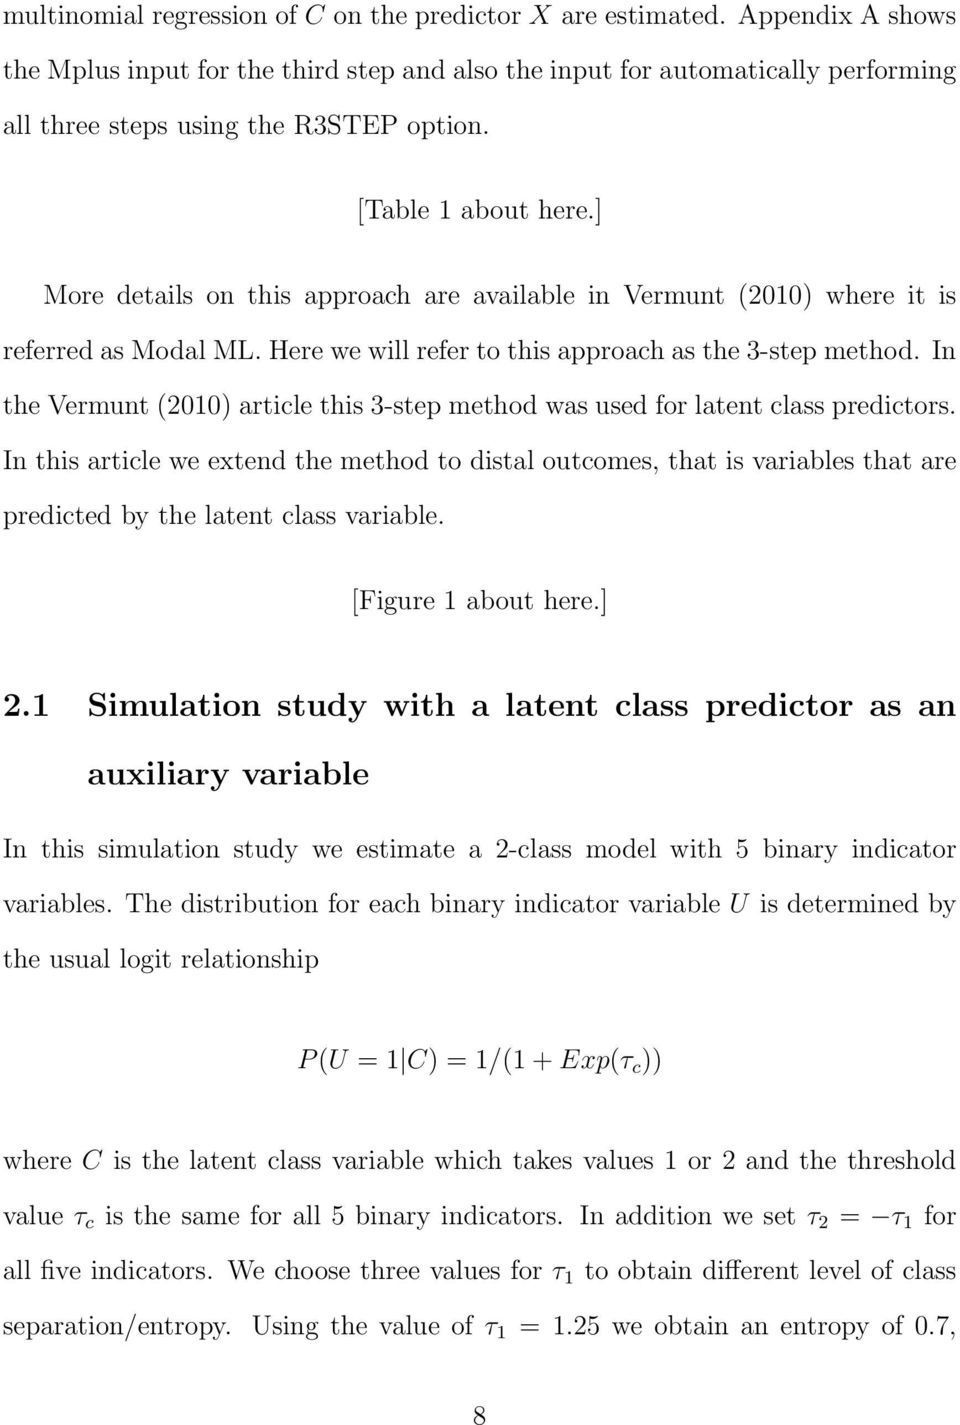 ] More details on this approach are available in Vermunt (2010) where it is referred as Modal ML. Here we will refer to this approach as the 3-step method.